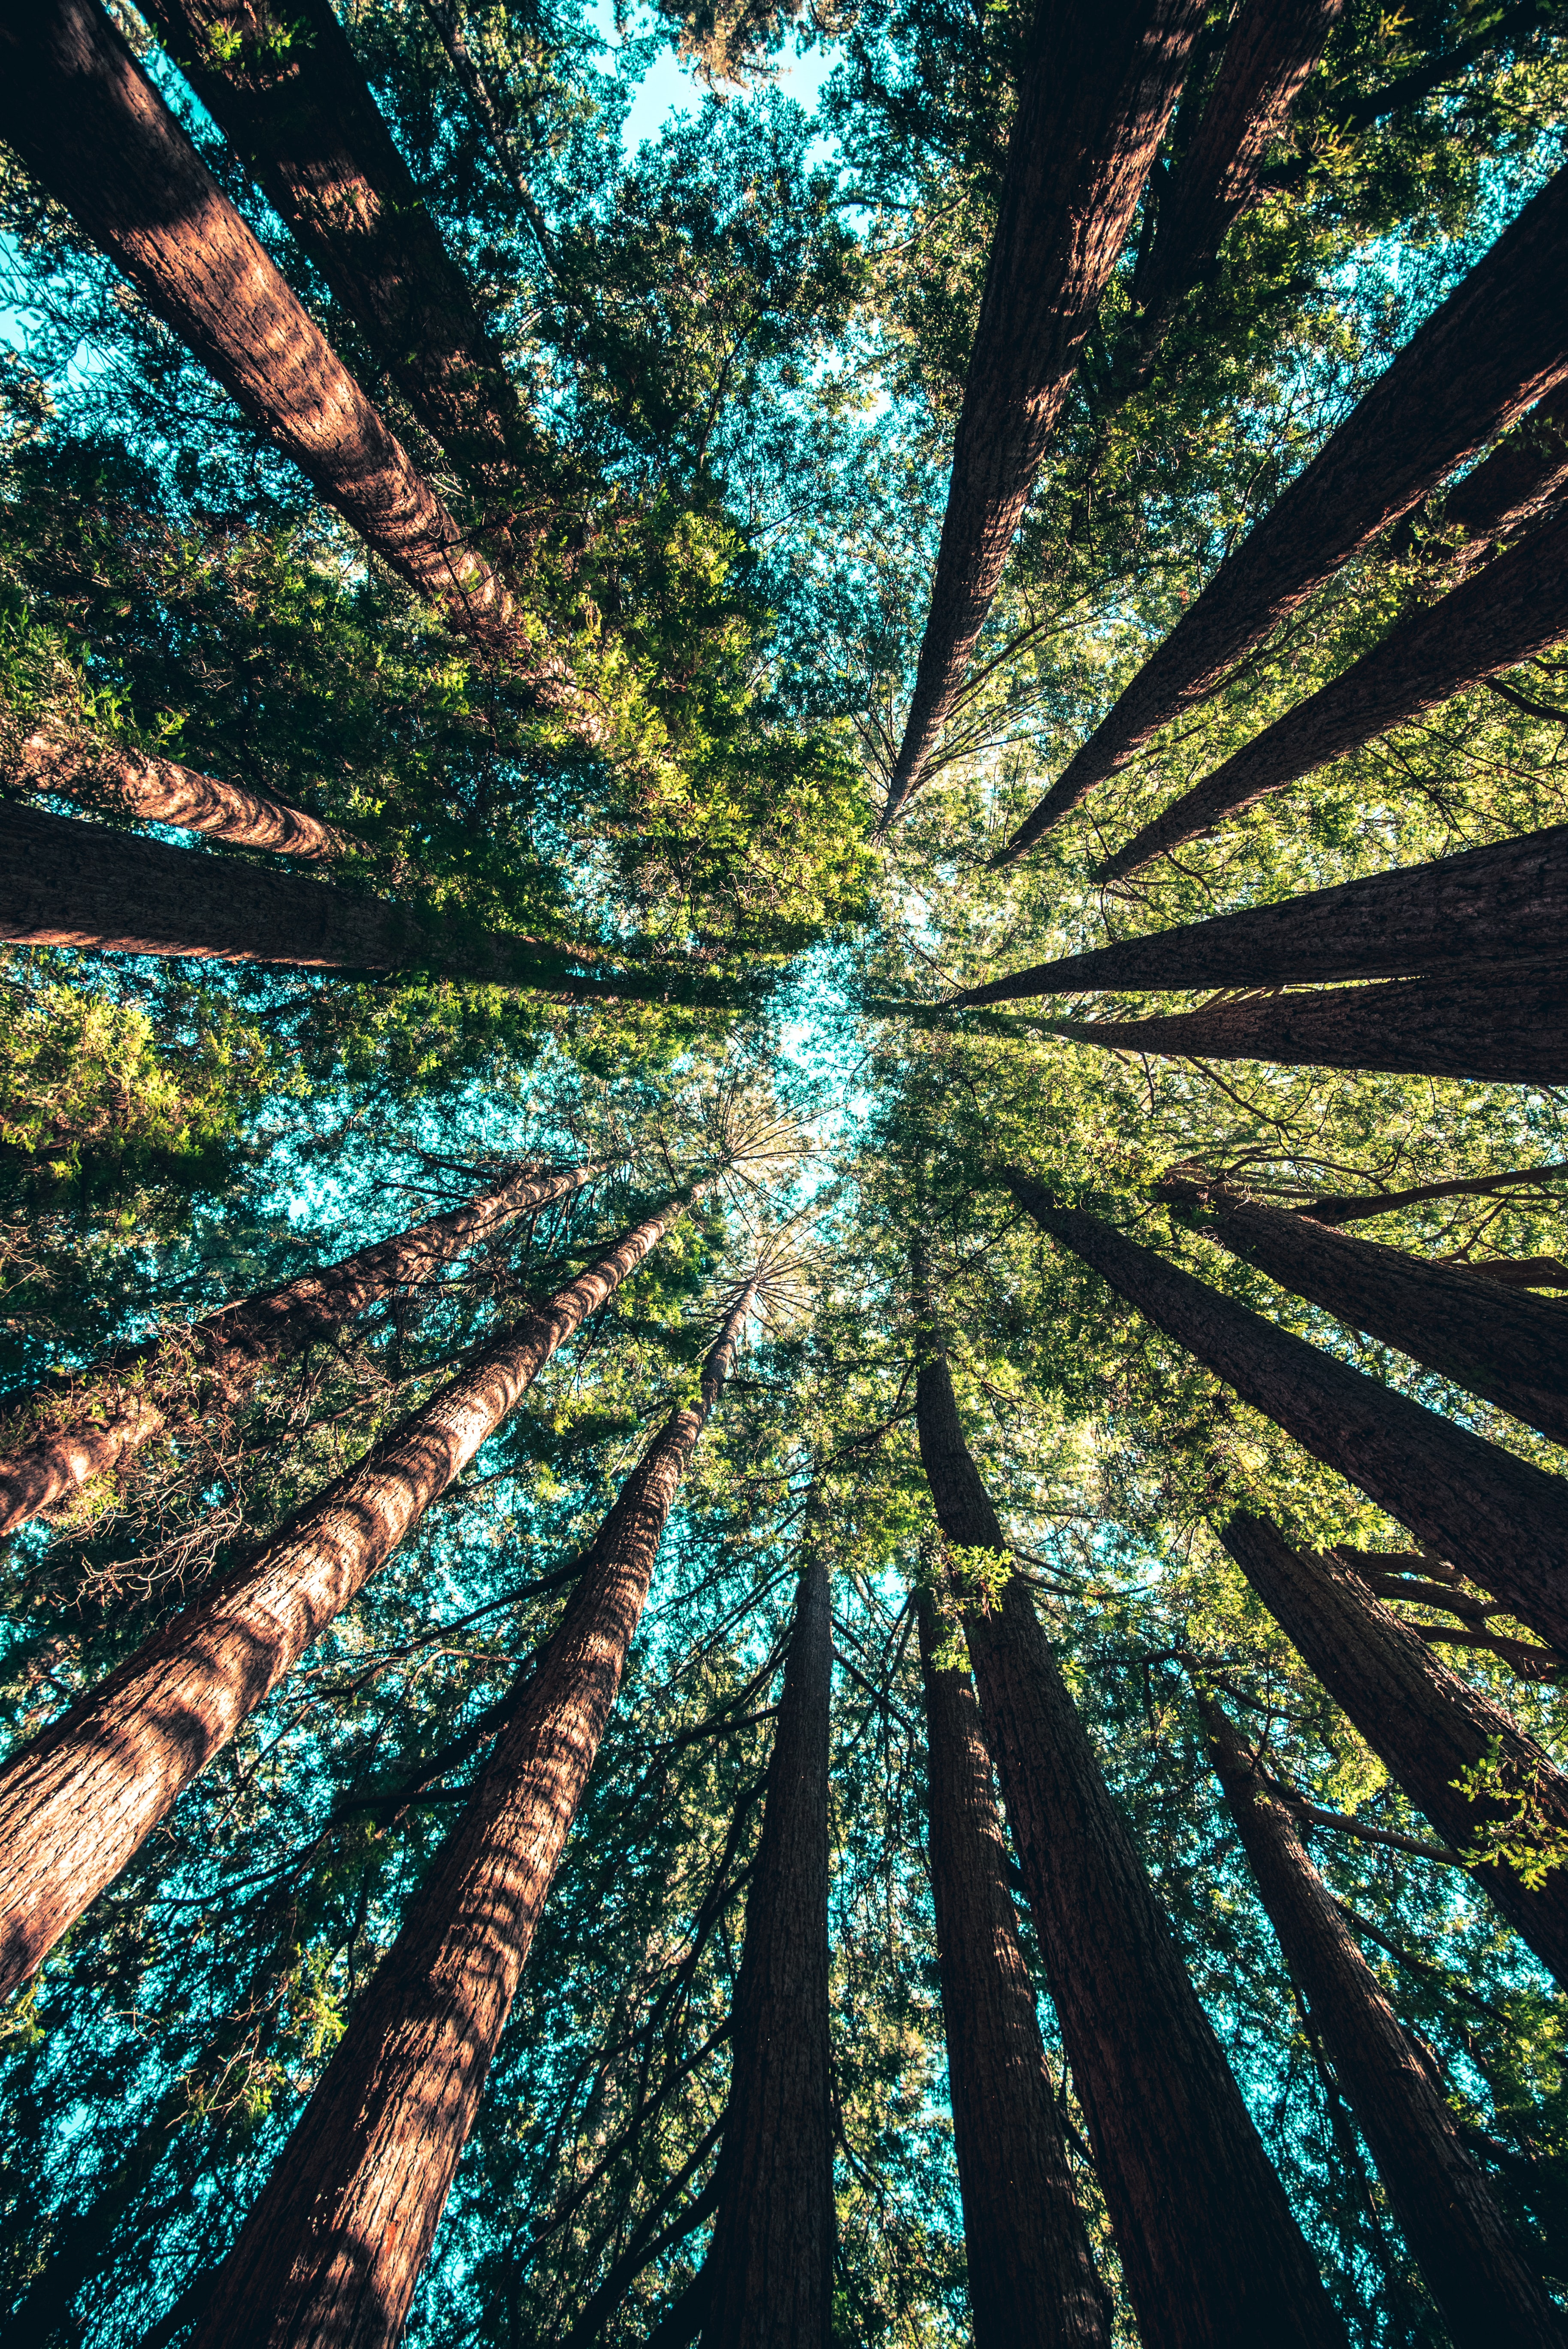 A harmonious group of trees that work together to complete a picture of its own